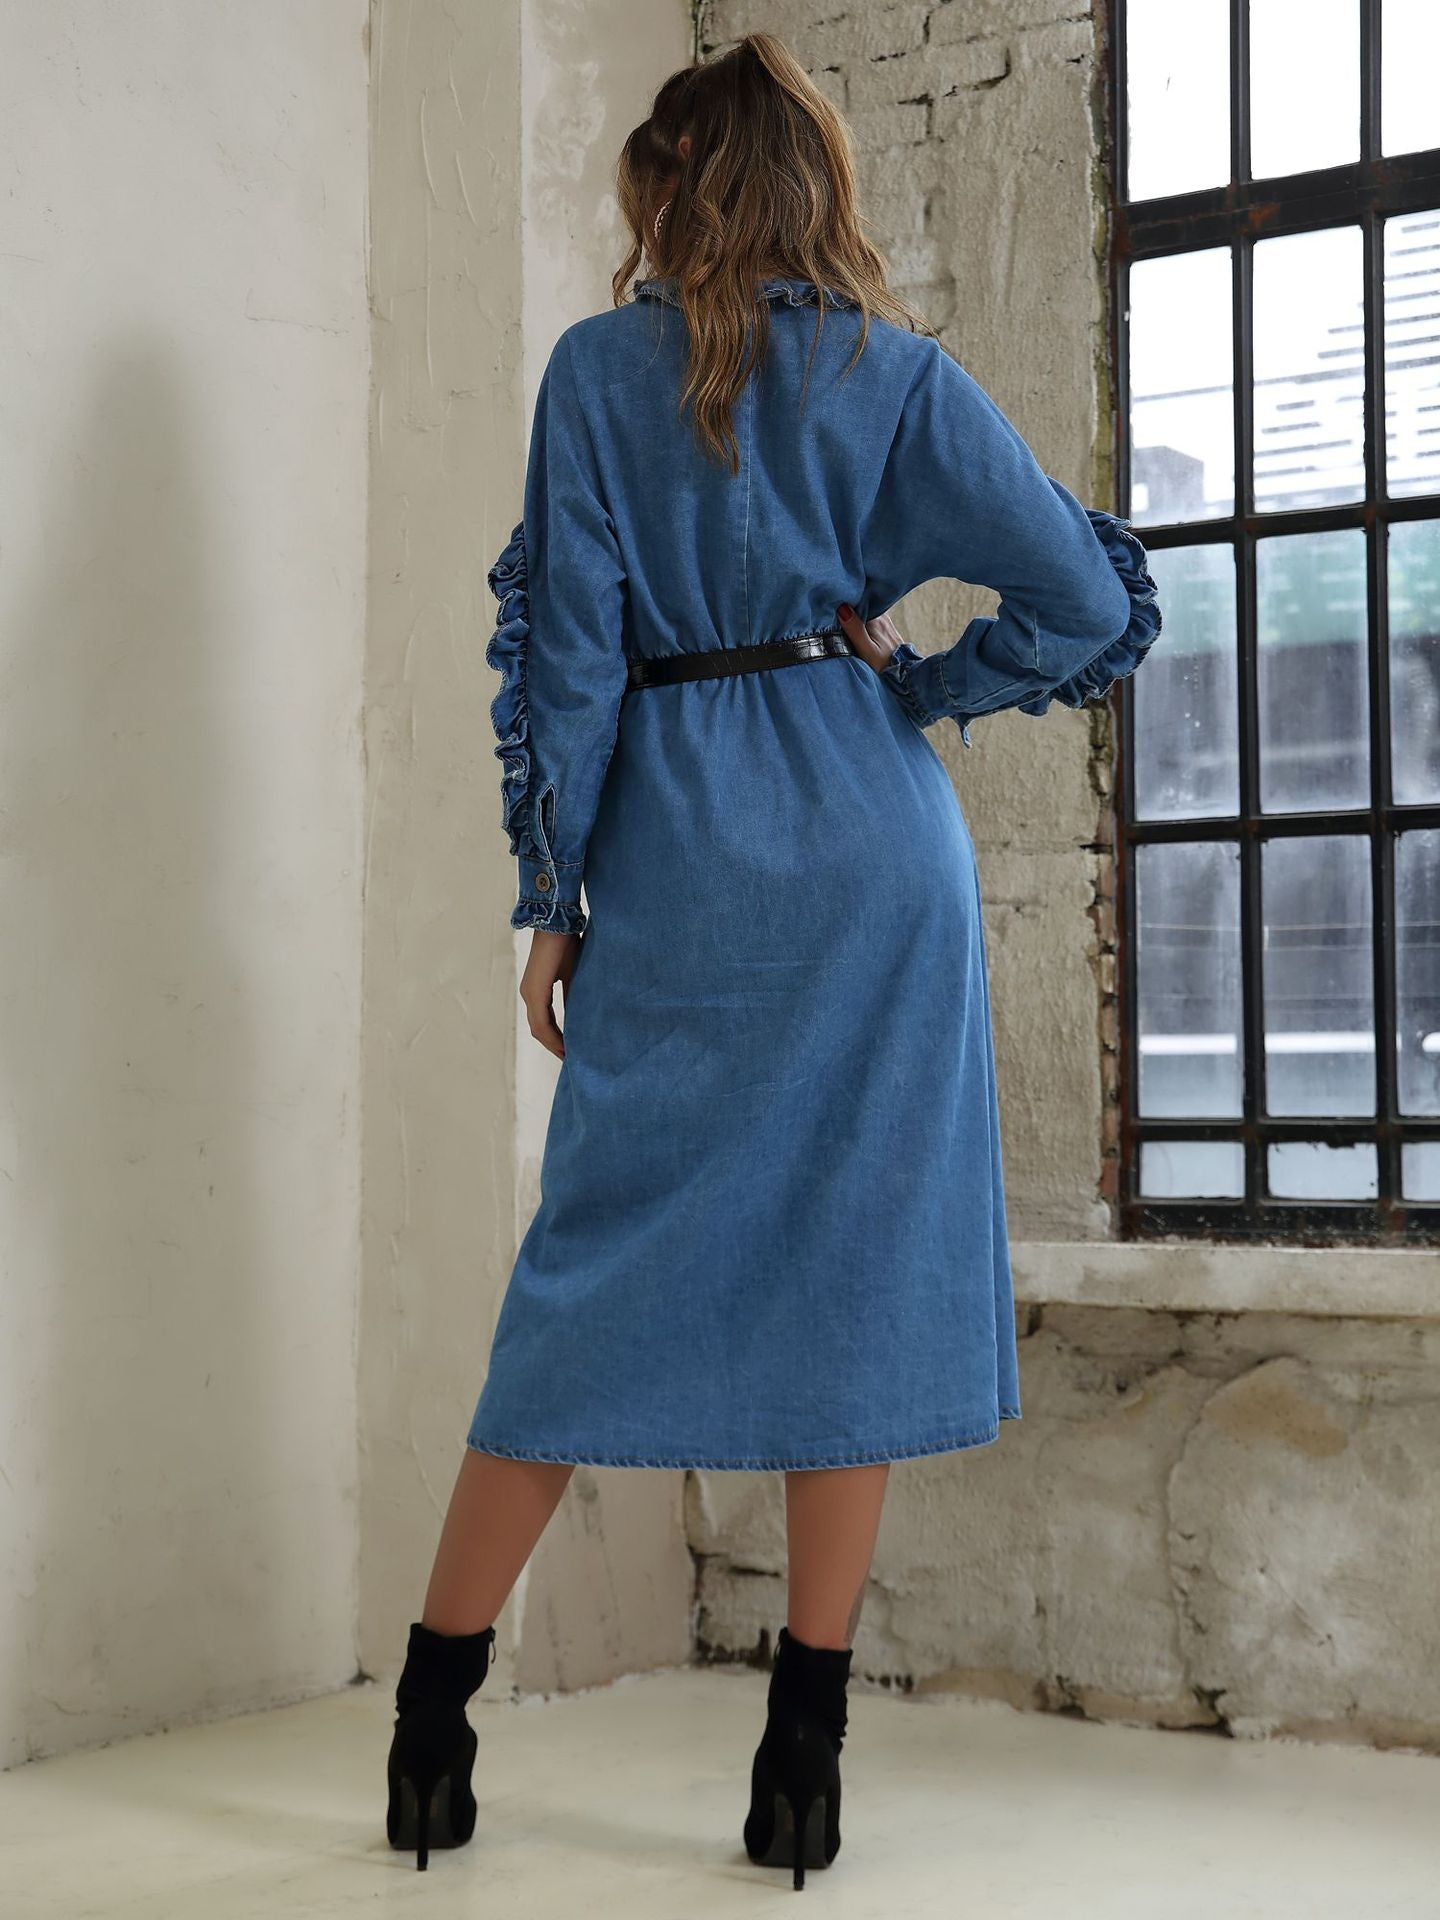 Denim Ruffles Vintage Dresses